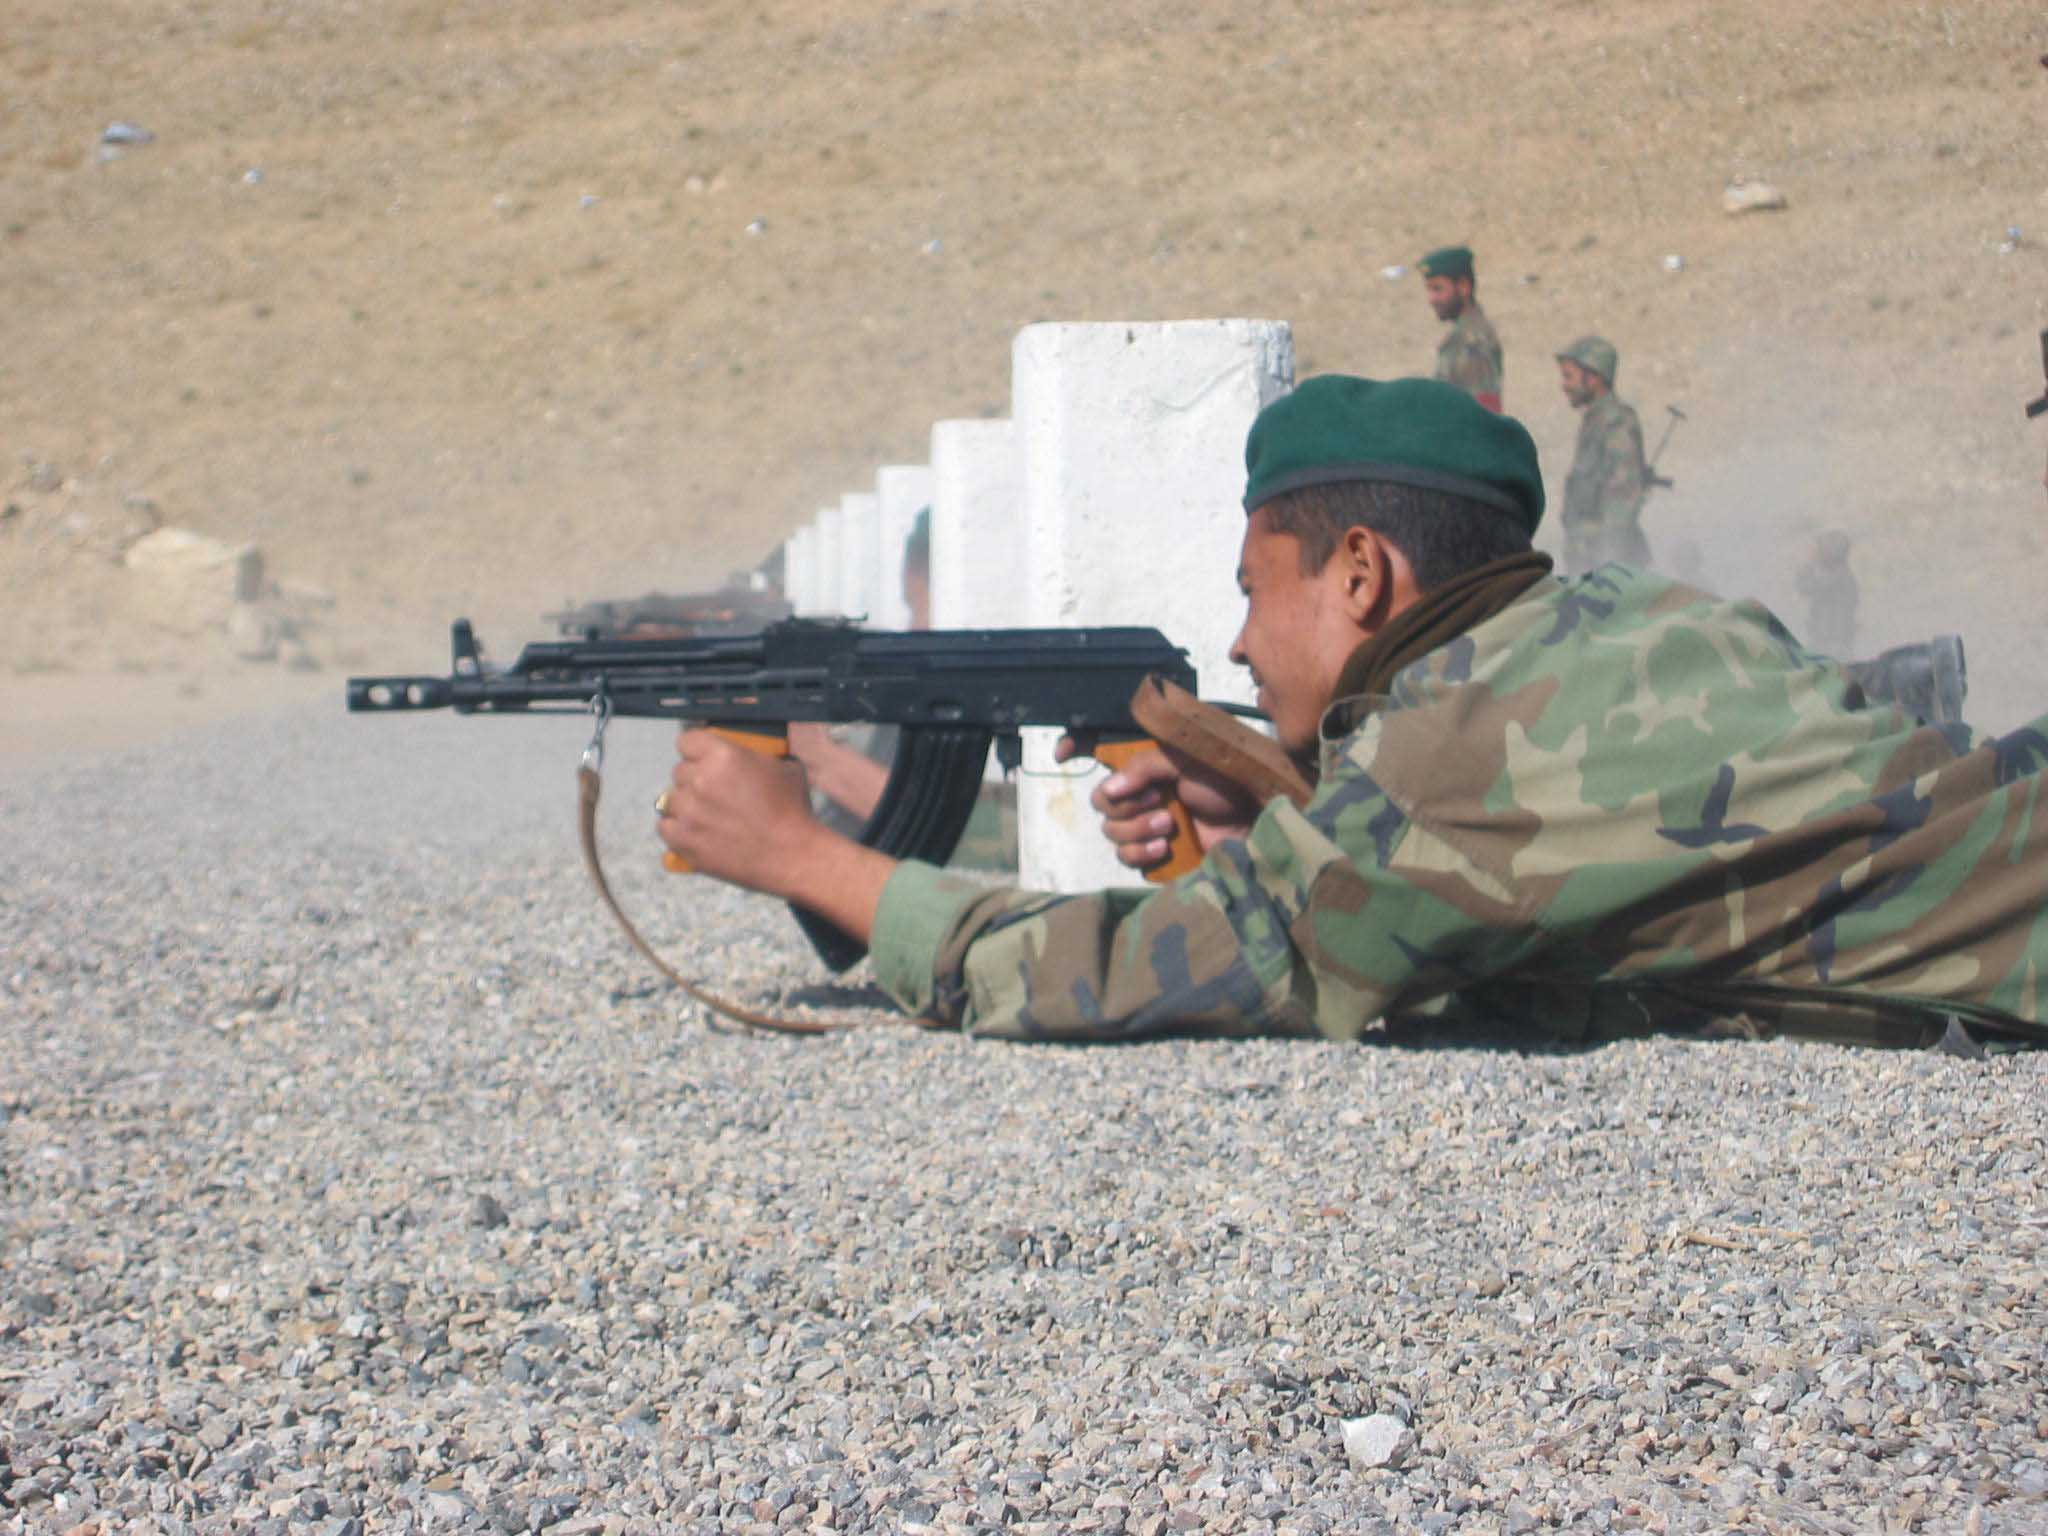 A young recruit to the Afghan National Army tries out his brand new Kalashnikov at a  training range near Kabul